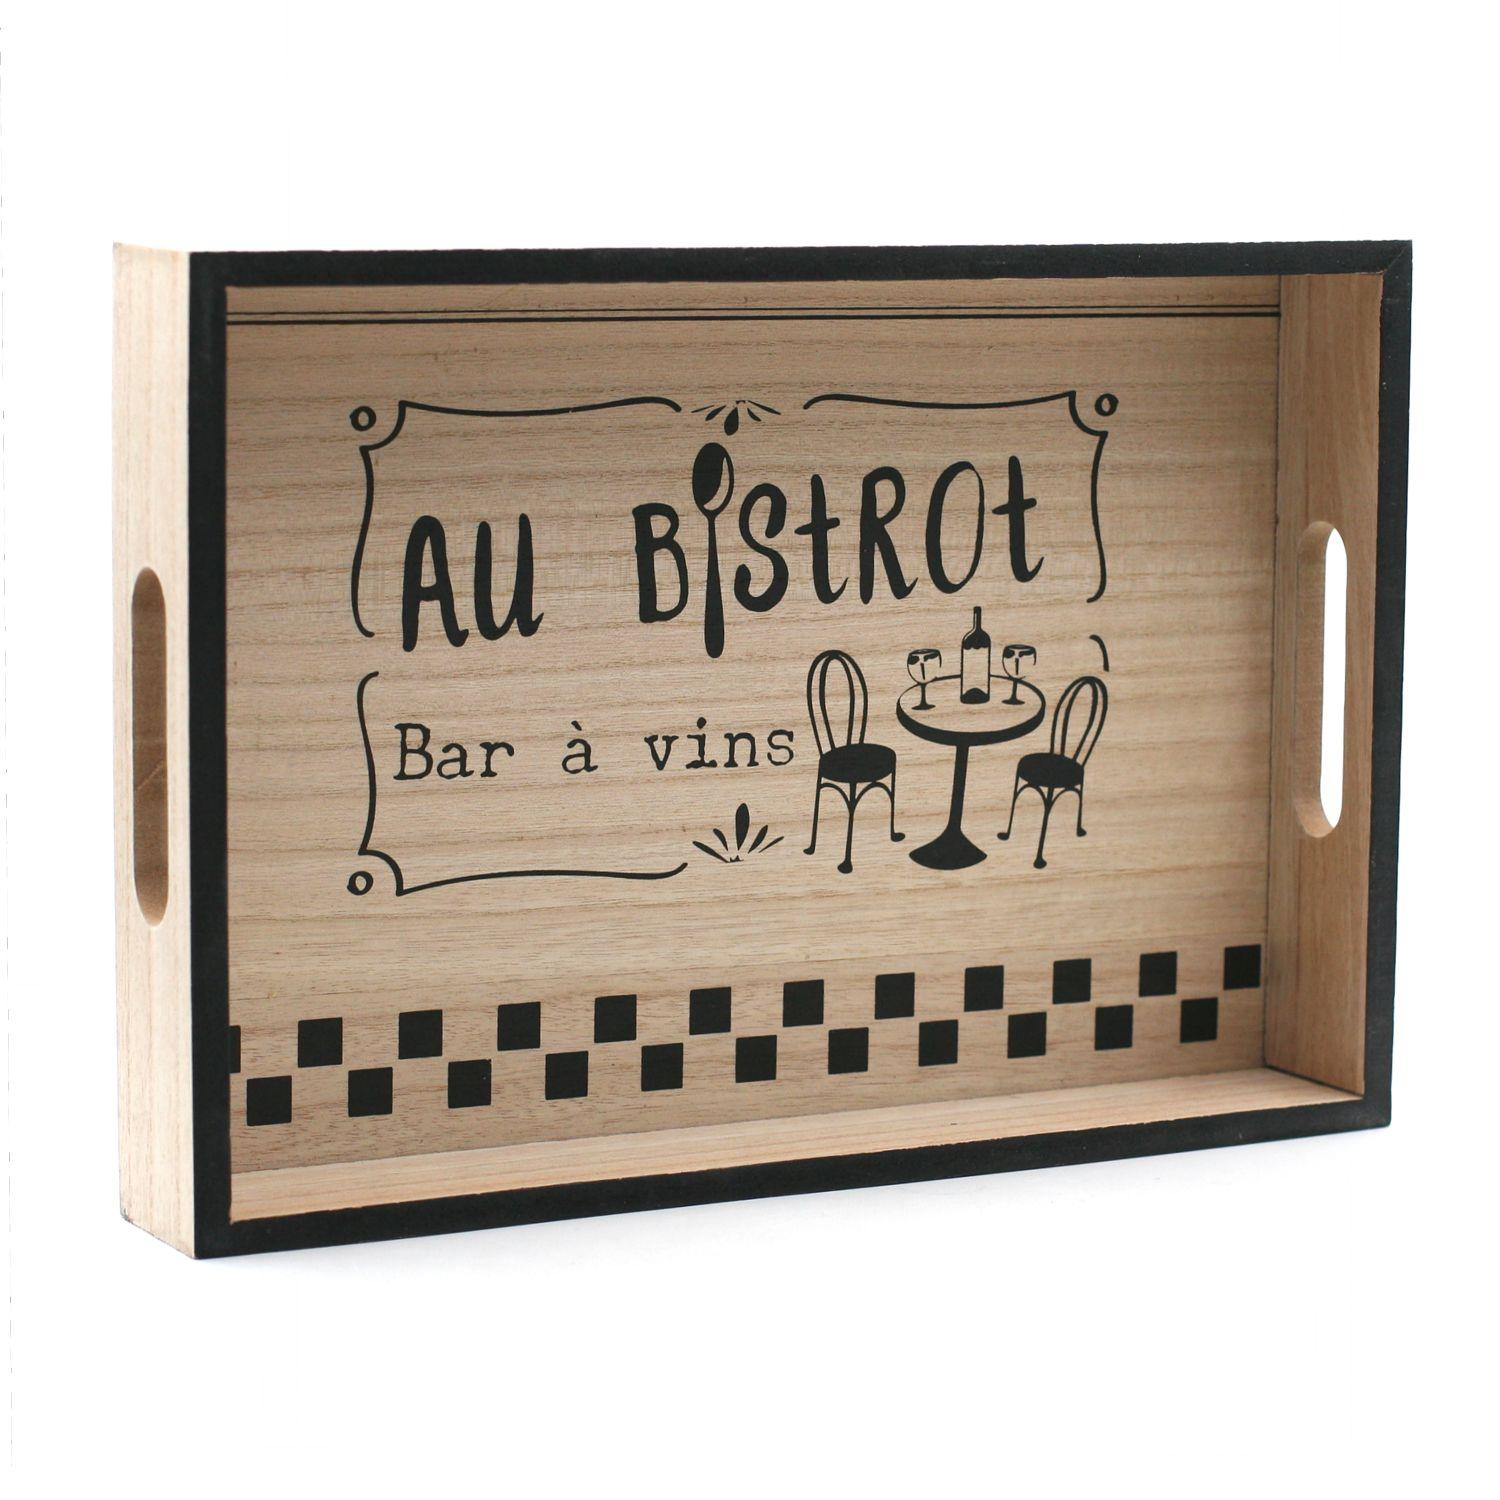 Plateau bois 33 x 23 cm - Collection AU BISTROT